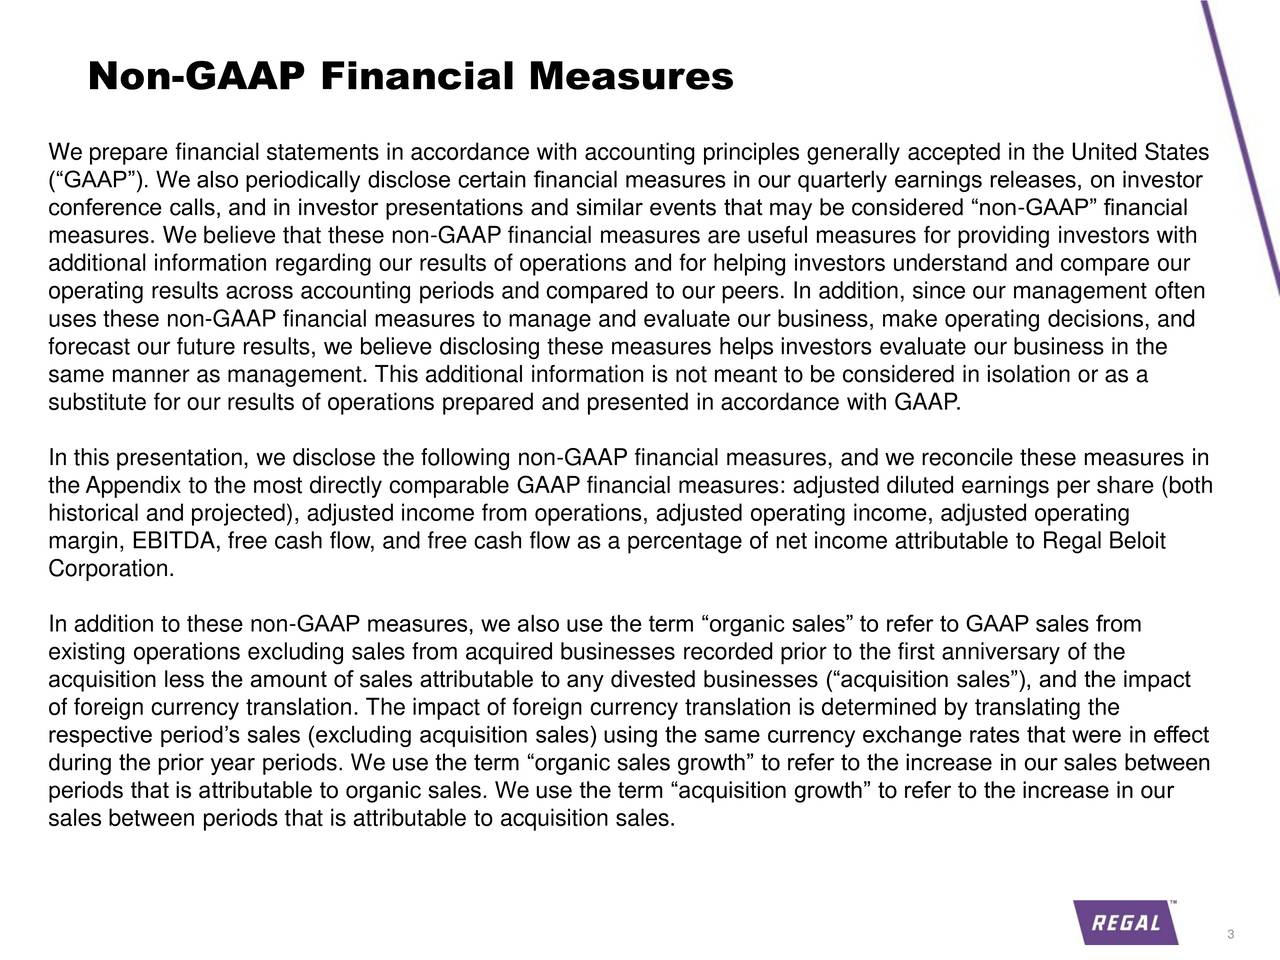 We prepare financial statements in accordance with accounting principles generally accepted in the United States (GAAP). We also periodically disclose certain financial measures in our quarterly earnings releases, on investor conference calls, and in investor presentations and similar events that may be considered non-GAAP financial measures. We believe that these non-GAAP financial measures are useful measures for providing investors with additional information regarding our results of operations and for helping investors understand and compare our operating results across accounting periods and compared to our peers. In addition, since our management often uses these non-GAAP financial measures to manage and evaluate our business, make operating decisions, and forecast our future results, we believe disclosing these measures helps investors evaluate our business in the same manner as management. This additional information is not meant to be considered in isolation or as a substitute for our results of operations prepared and presented in accordance with GAAP. In this presentation, we disclose the following non-GAAP financial measures, and we reconcile these measures in the Appendix to the most directly comparable GAAP financial measures: adjusted diluted earnings per share (both historical and projected), adjusted income from operations, adjusted operating income, adjusted operating margin, EBITDA, free cash flow, and free cash flow as a percentage of net income attributable to Regal Beloit Corporation. In addition to these non-GAAP measures, we also use the term organic sales to refer to GAAP sales from existing operations excluding sales from acquired businesses recorded prior to the first anniversary of the acquisition less the amount of sales attributable to any divested businesses (acquisition sales), and the impact of foreign currency translation. The impact of foreign currency translation is determined by translating the respective periods sales (excluding